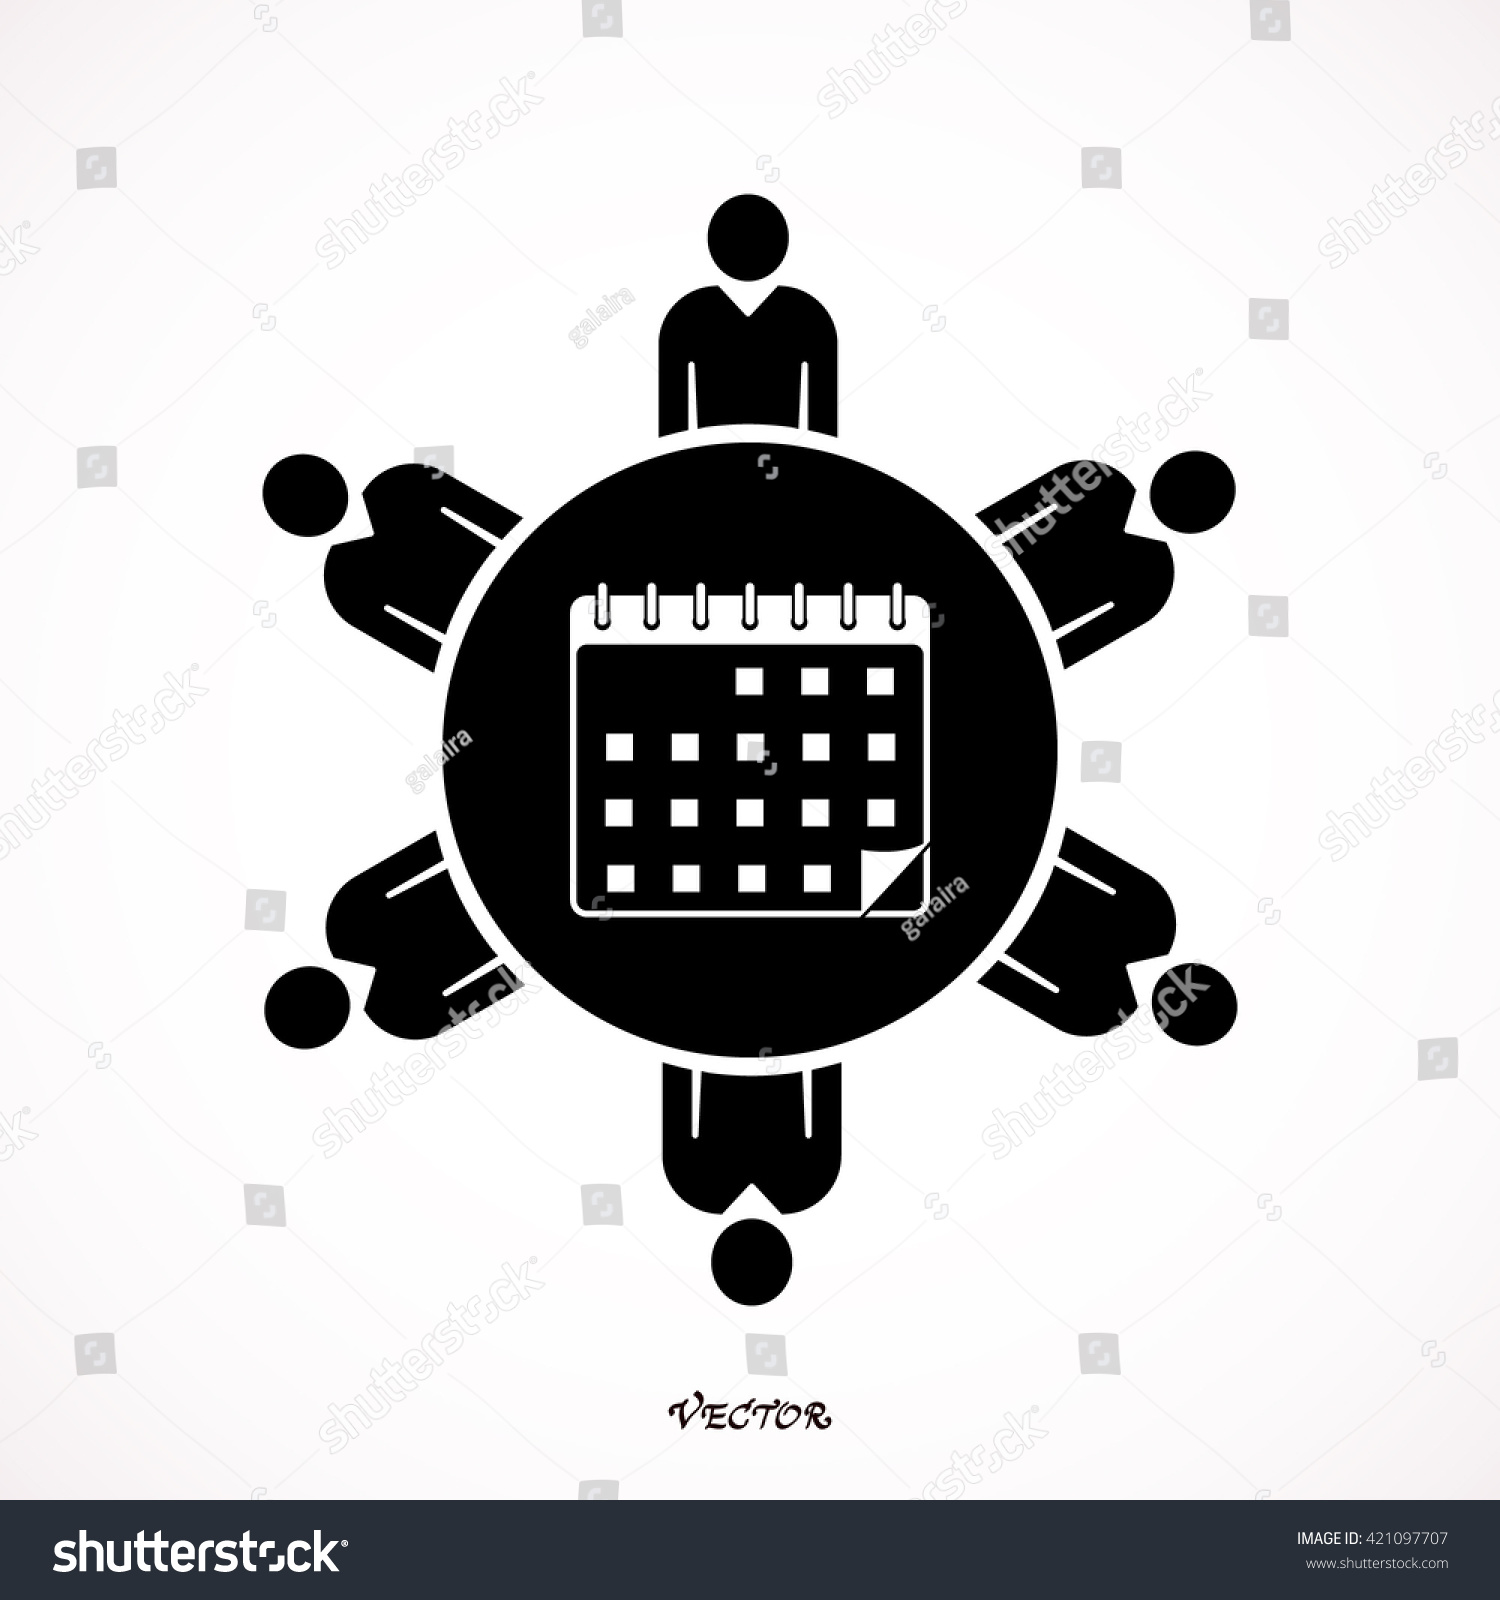 Calendar Meeting Icon